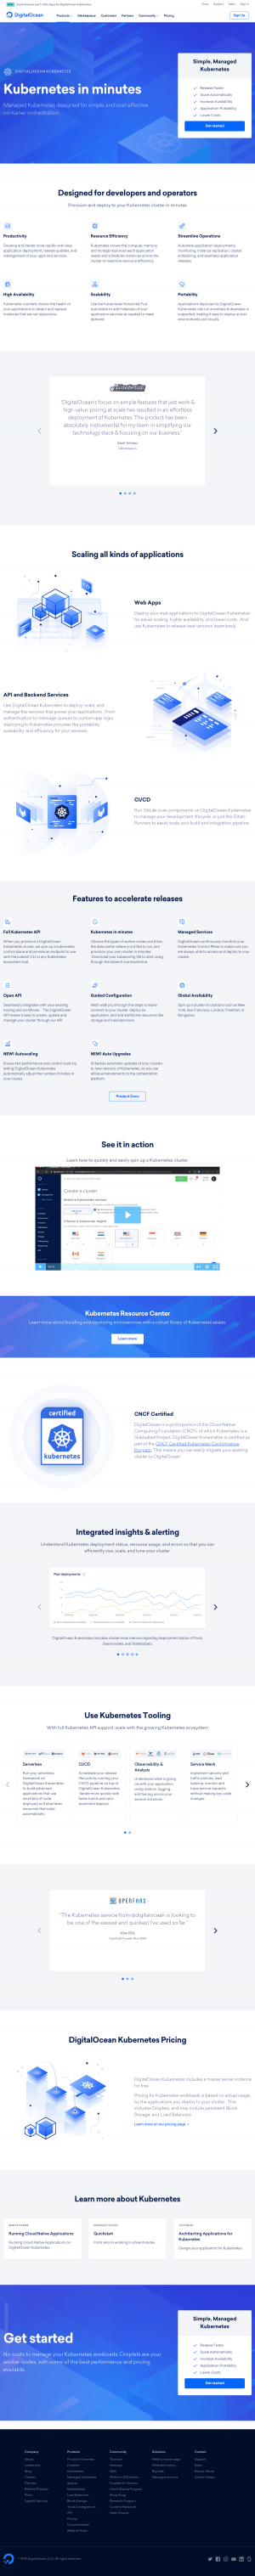 DigitalOcean - Features page 2